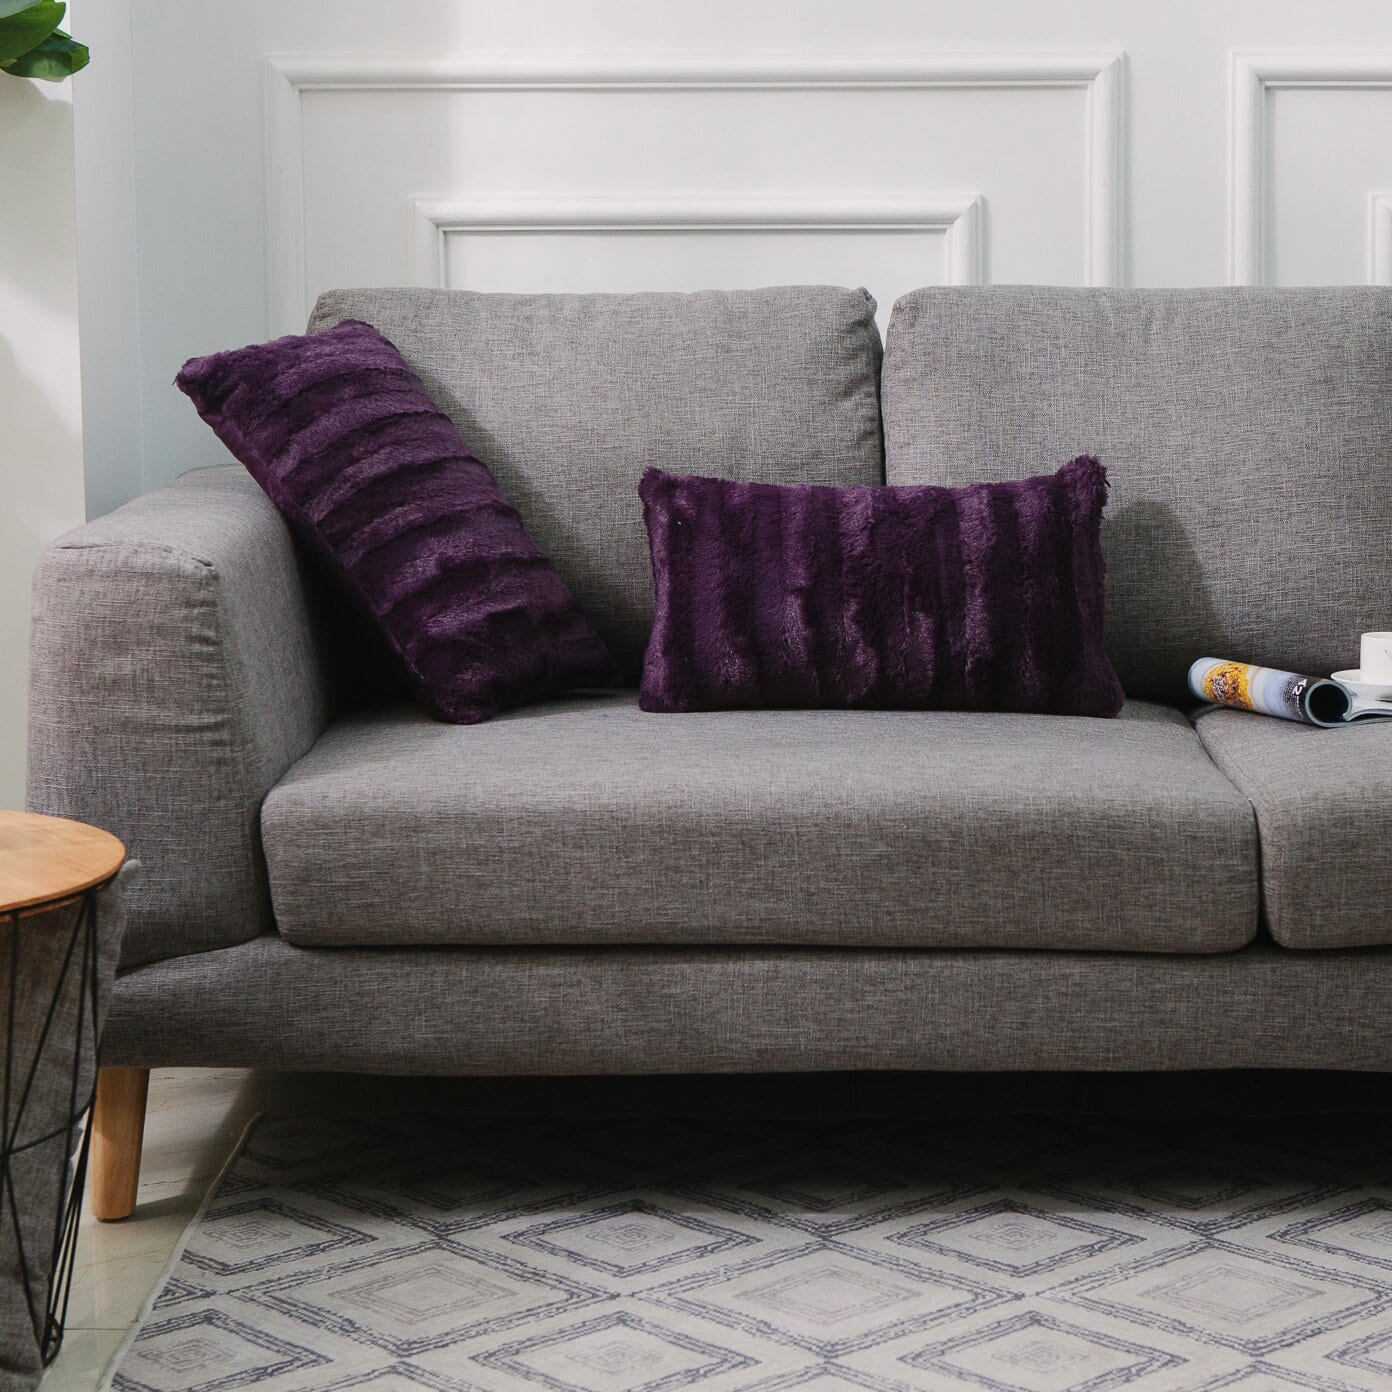 Grey Couch With Purple Throw Pillows